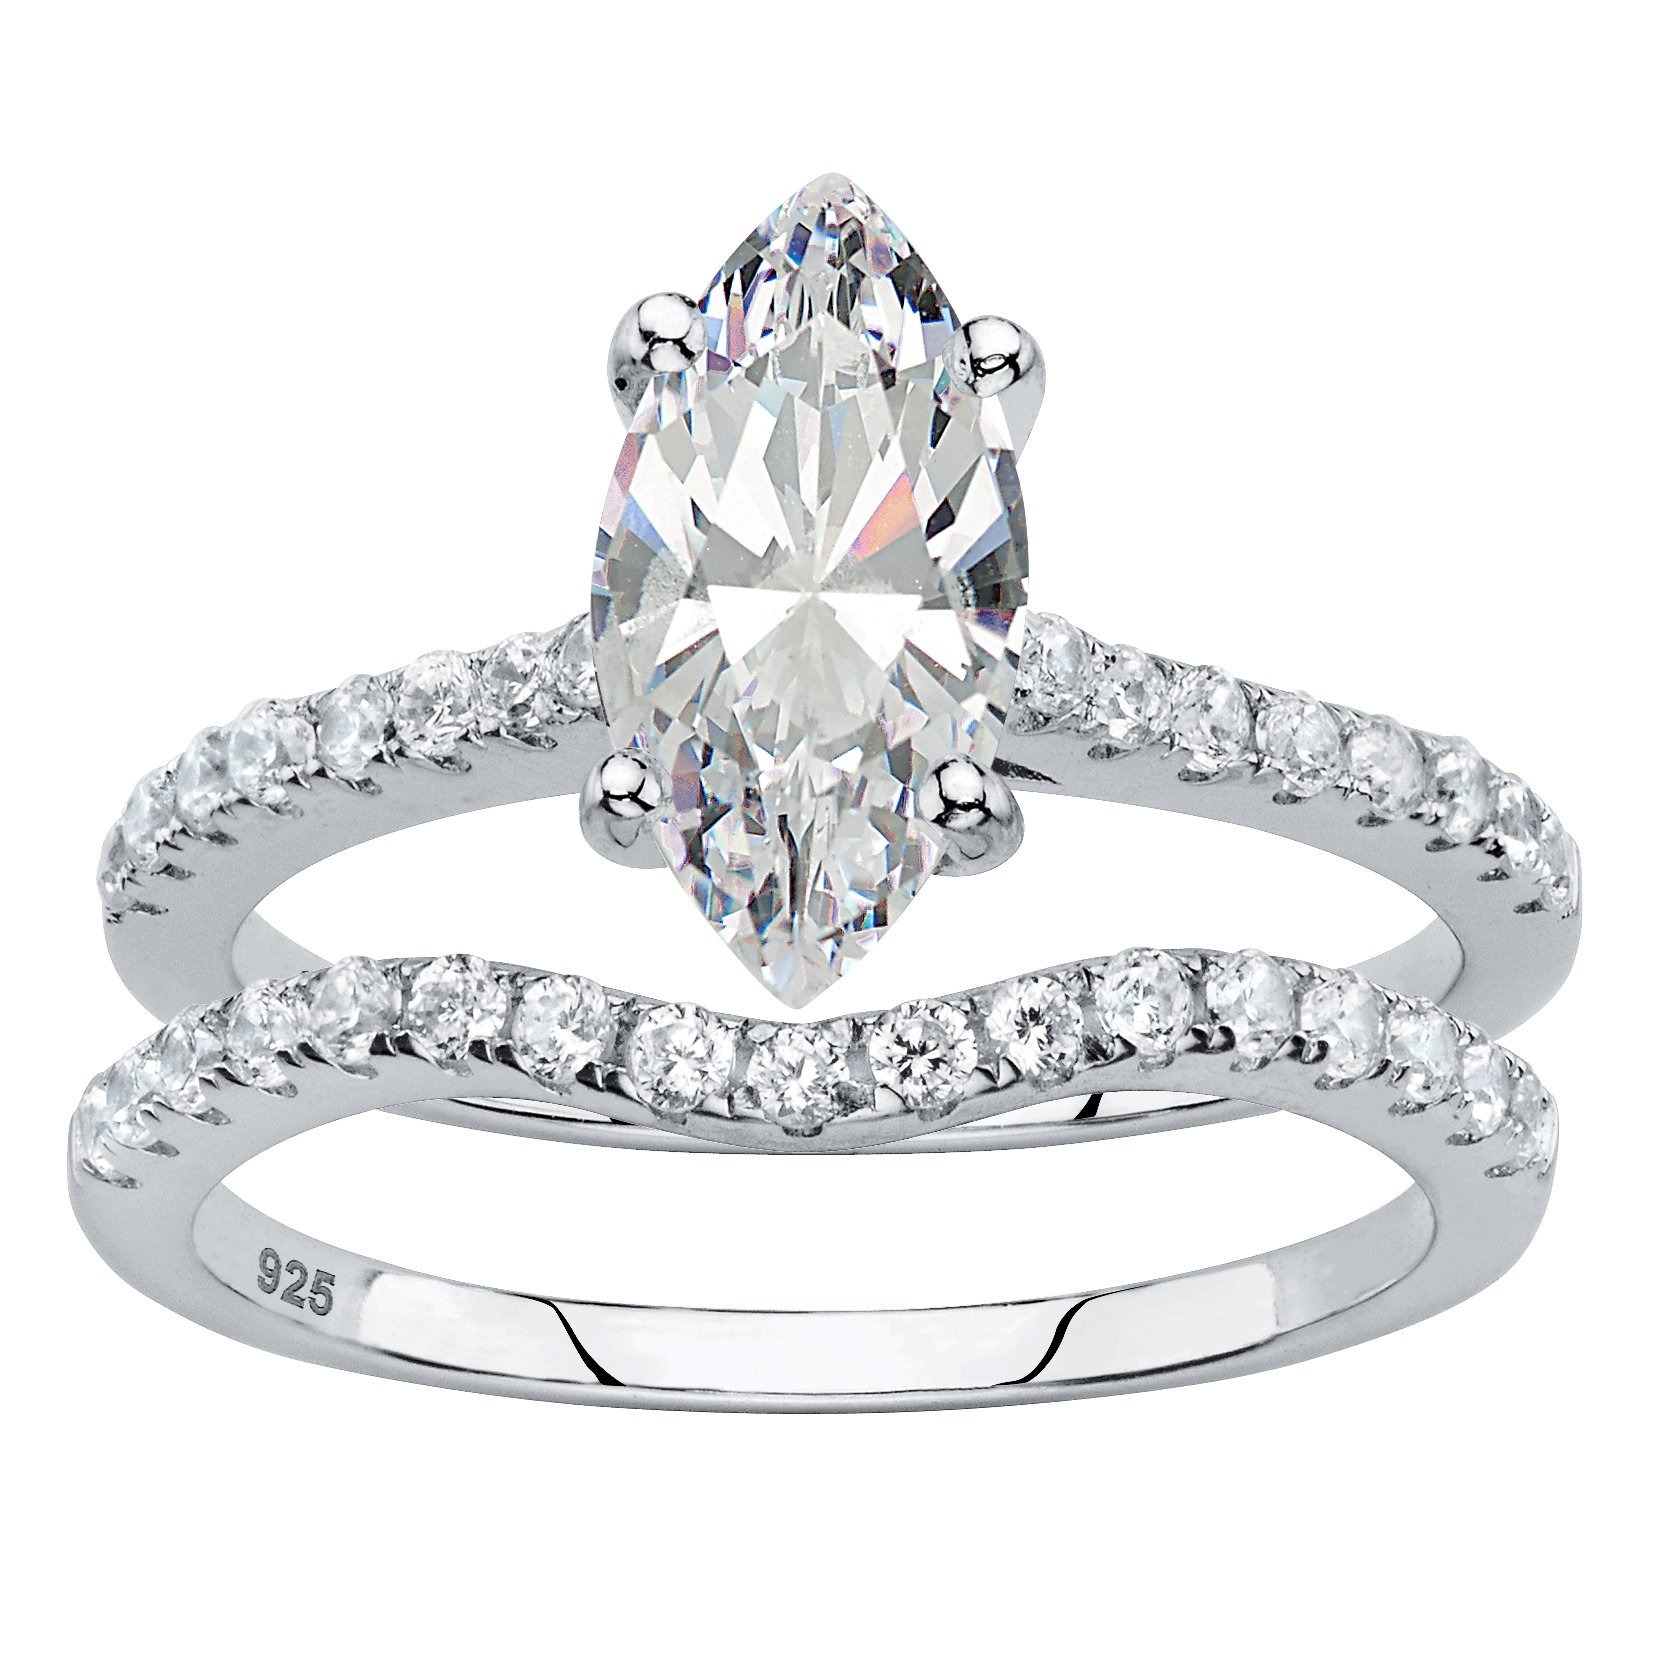 Marquise-Cut White Cubic Zirconia Platinum over .925 Silver 2-Piece Bridal Ring Set Size 6